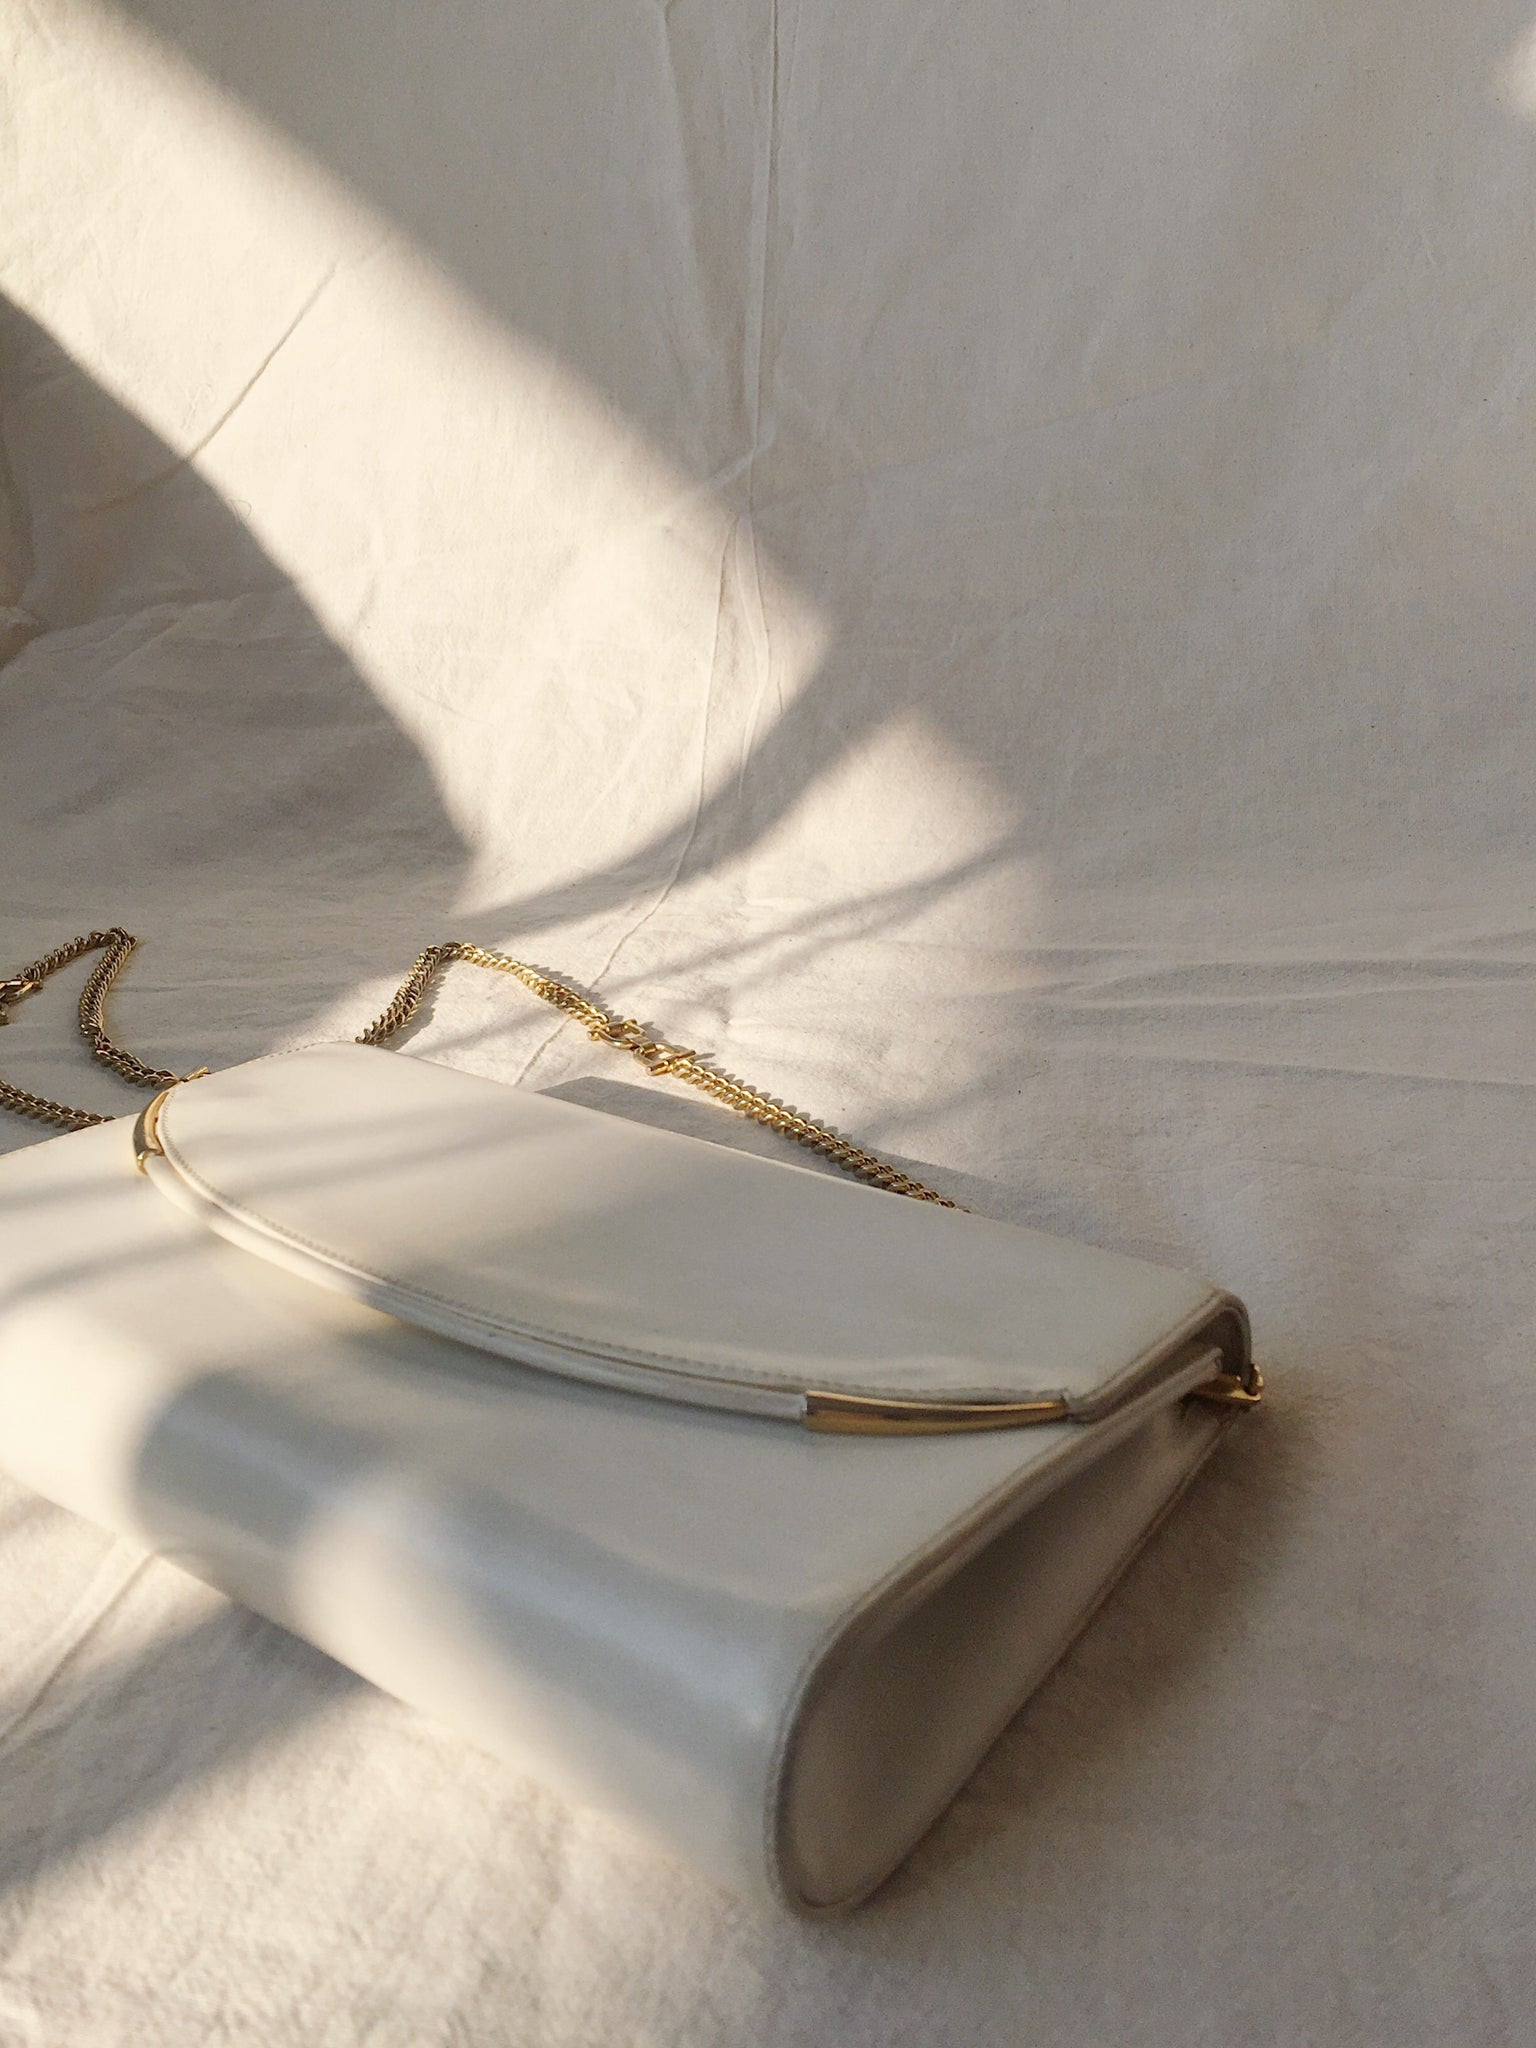 Vintage White and Gold Leather Handbag